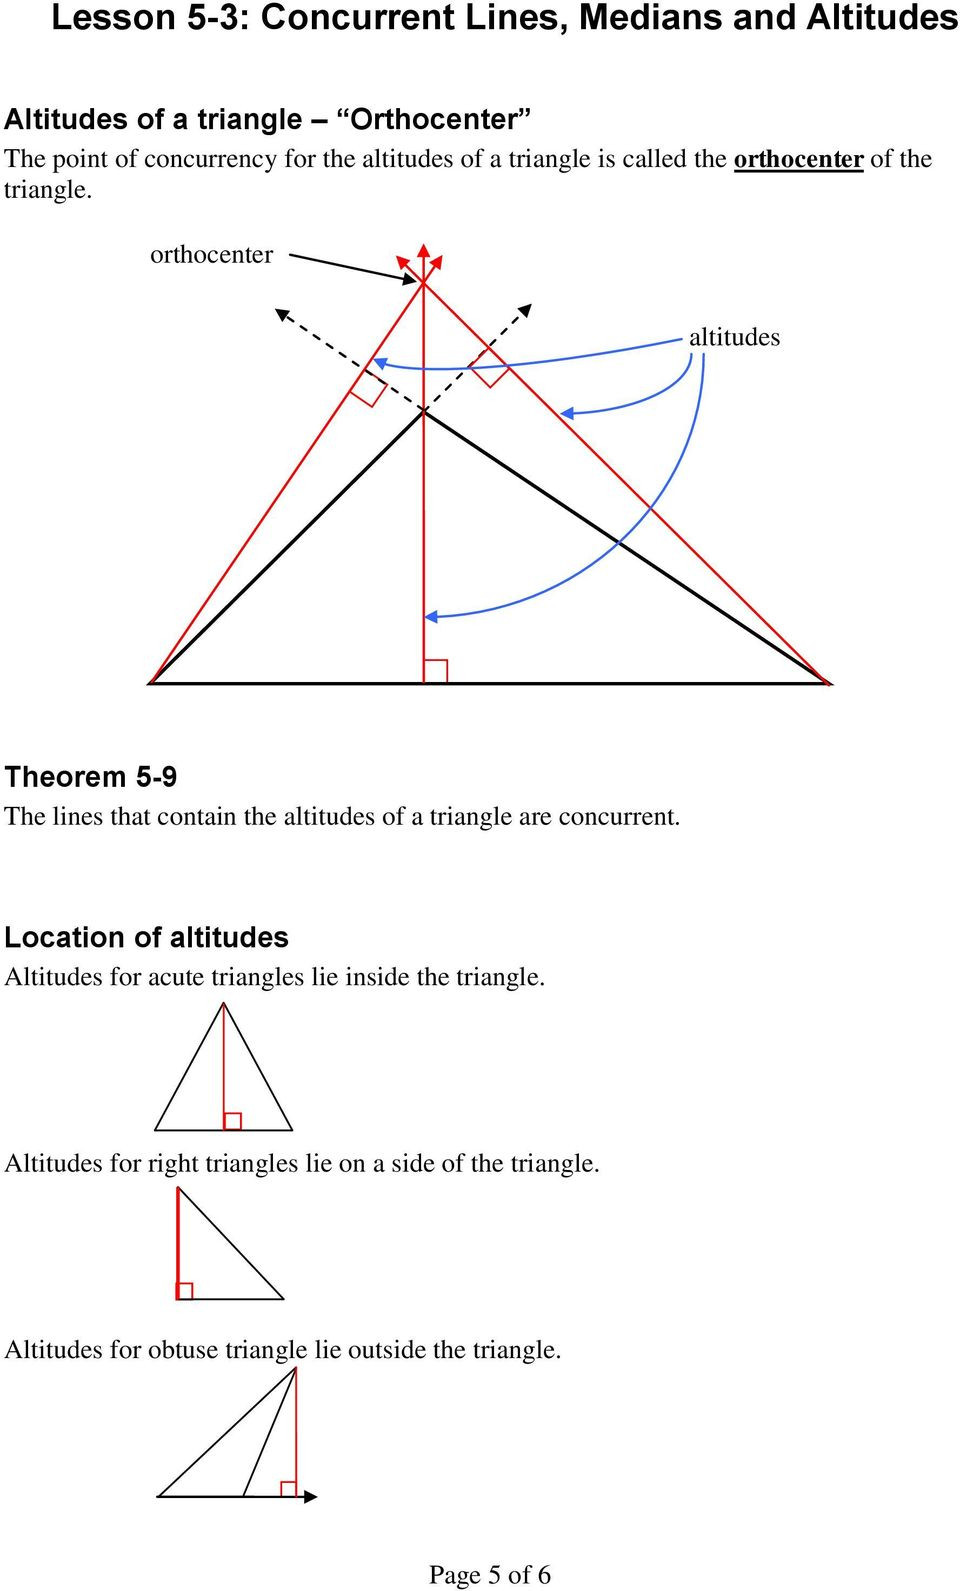 Points Of Concurrency Worksheet Answers Lesson 5 3 Concurrent Lines Medians and Altitudes Pdf